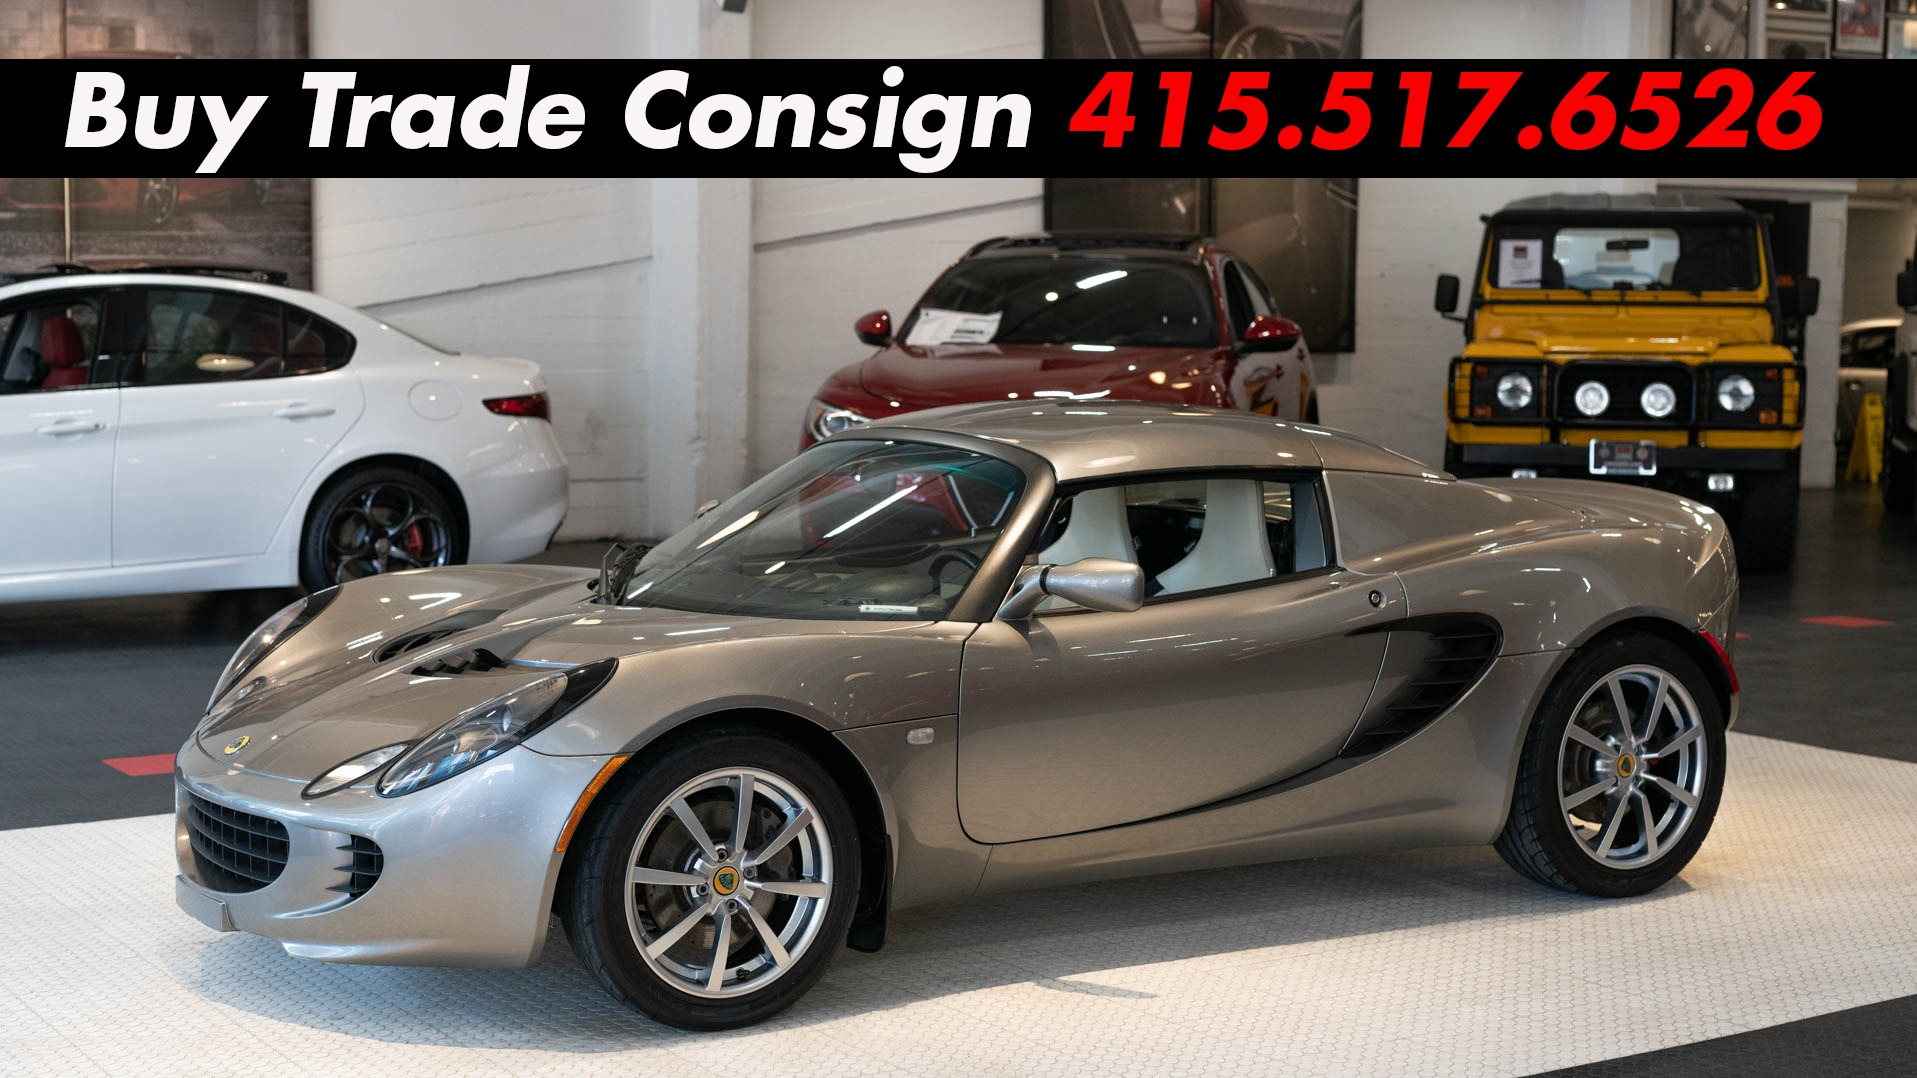 Used Cars San Francisco >> Used 2006 Lotus Elise For Sale 31 900 Cars Dawydiak